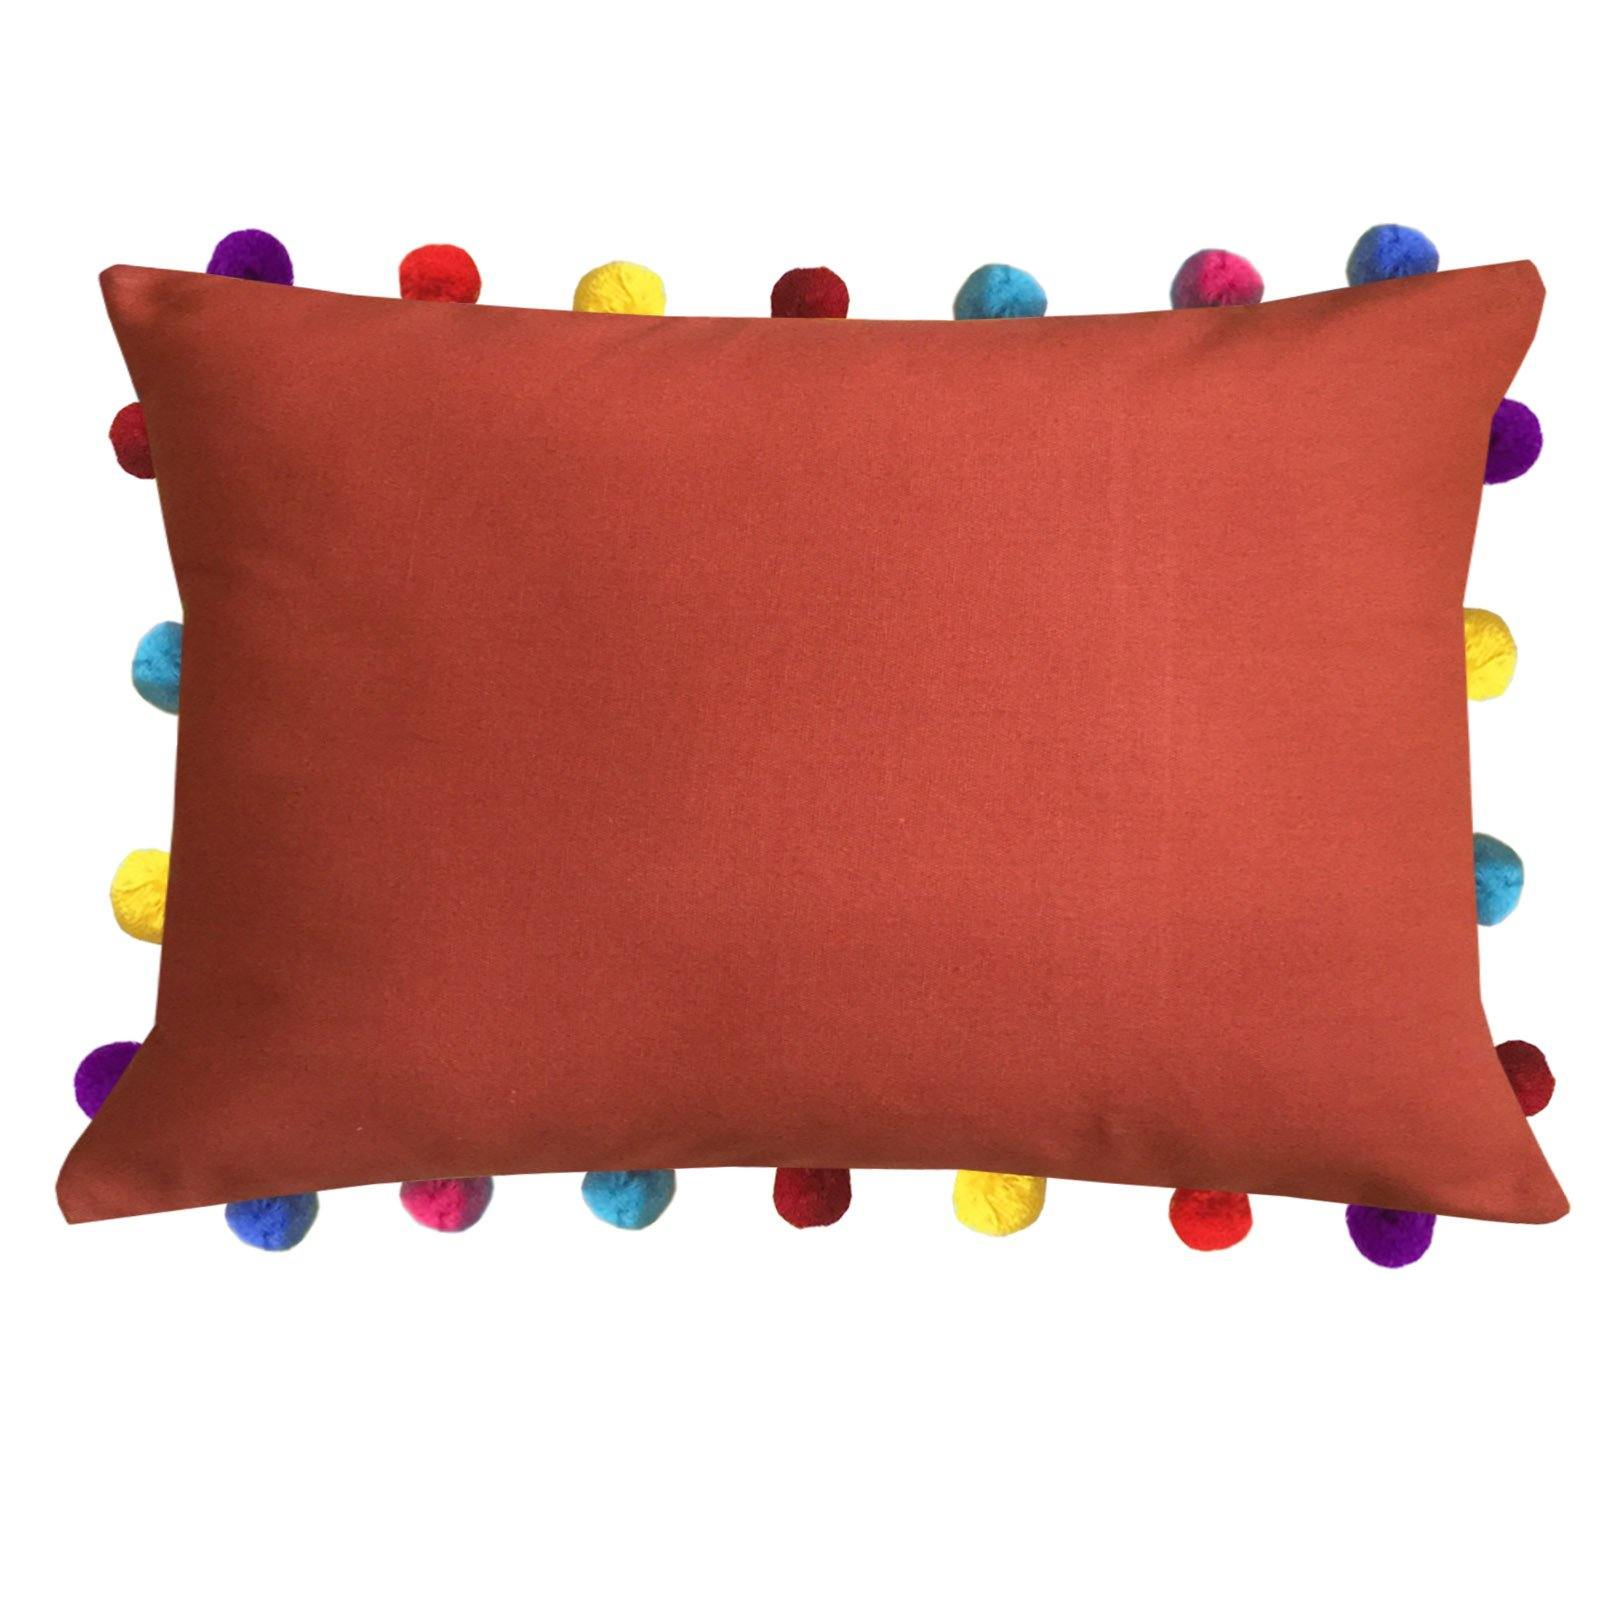 "Lushomes Red Wood Cushion Cover with Colorful Pom poms (Single pc, 14 x 20"") - Lushomes"